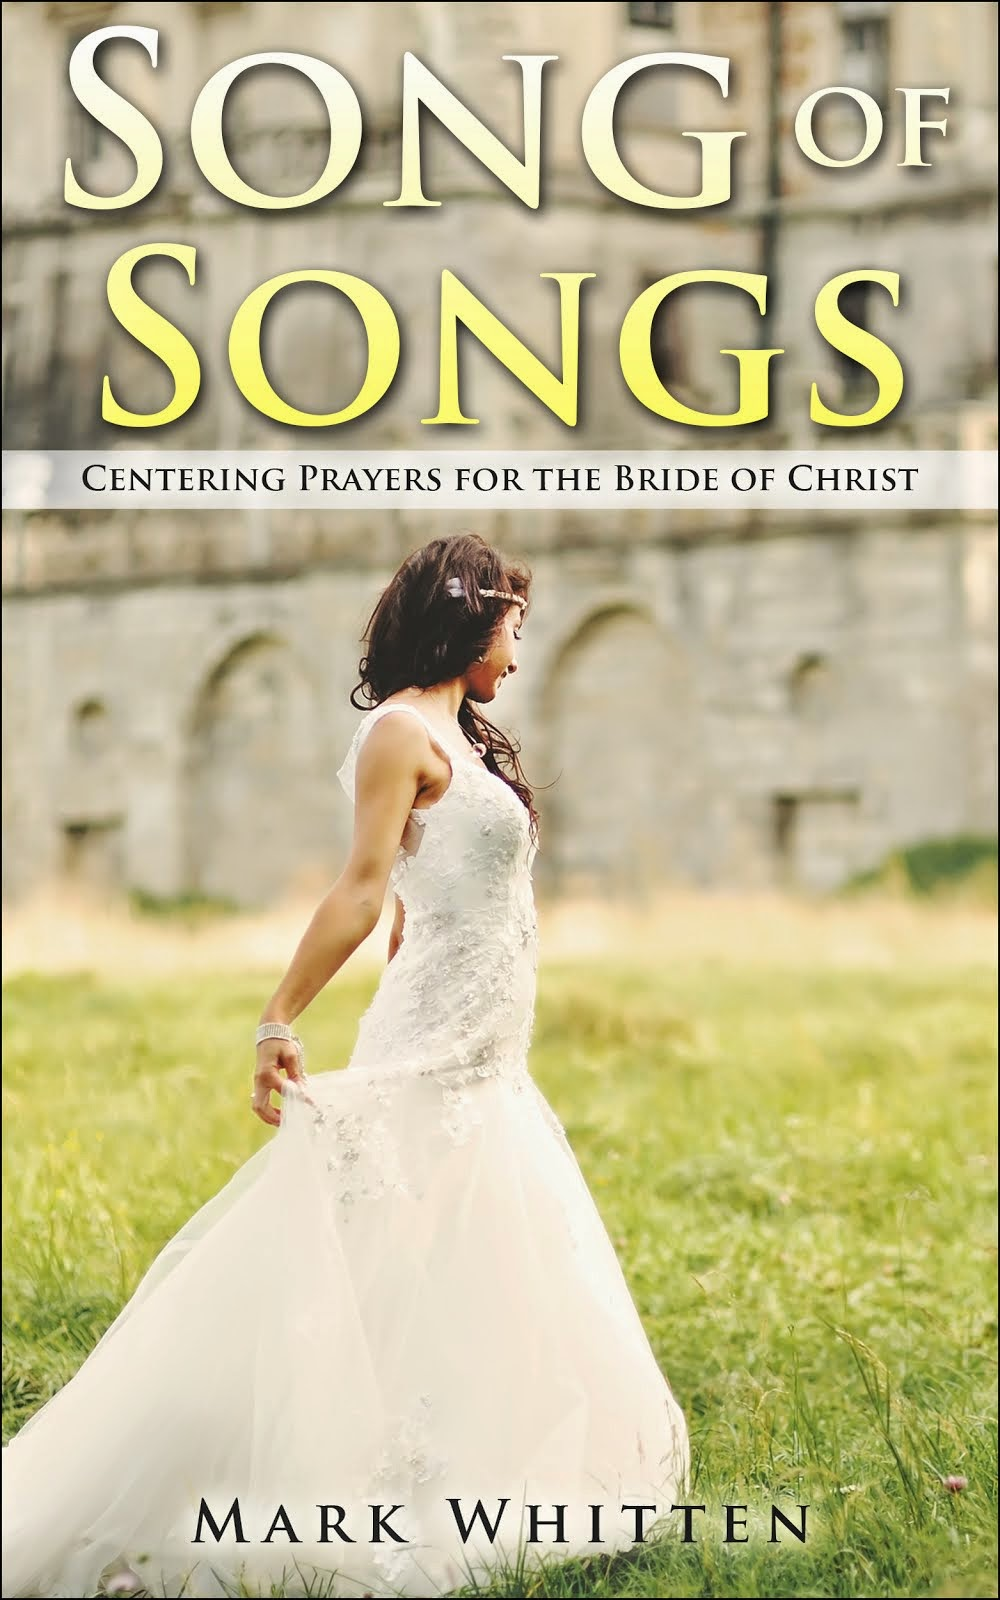 Song of Songs: Centering Prayers for the Bride of Christ